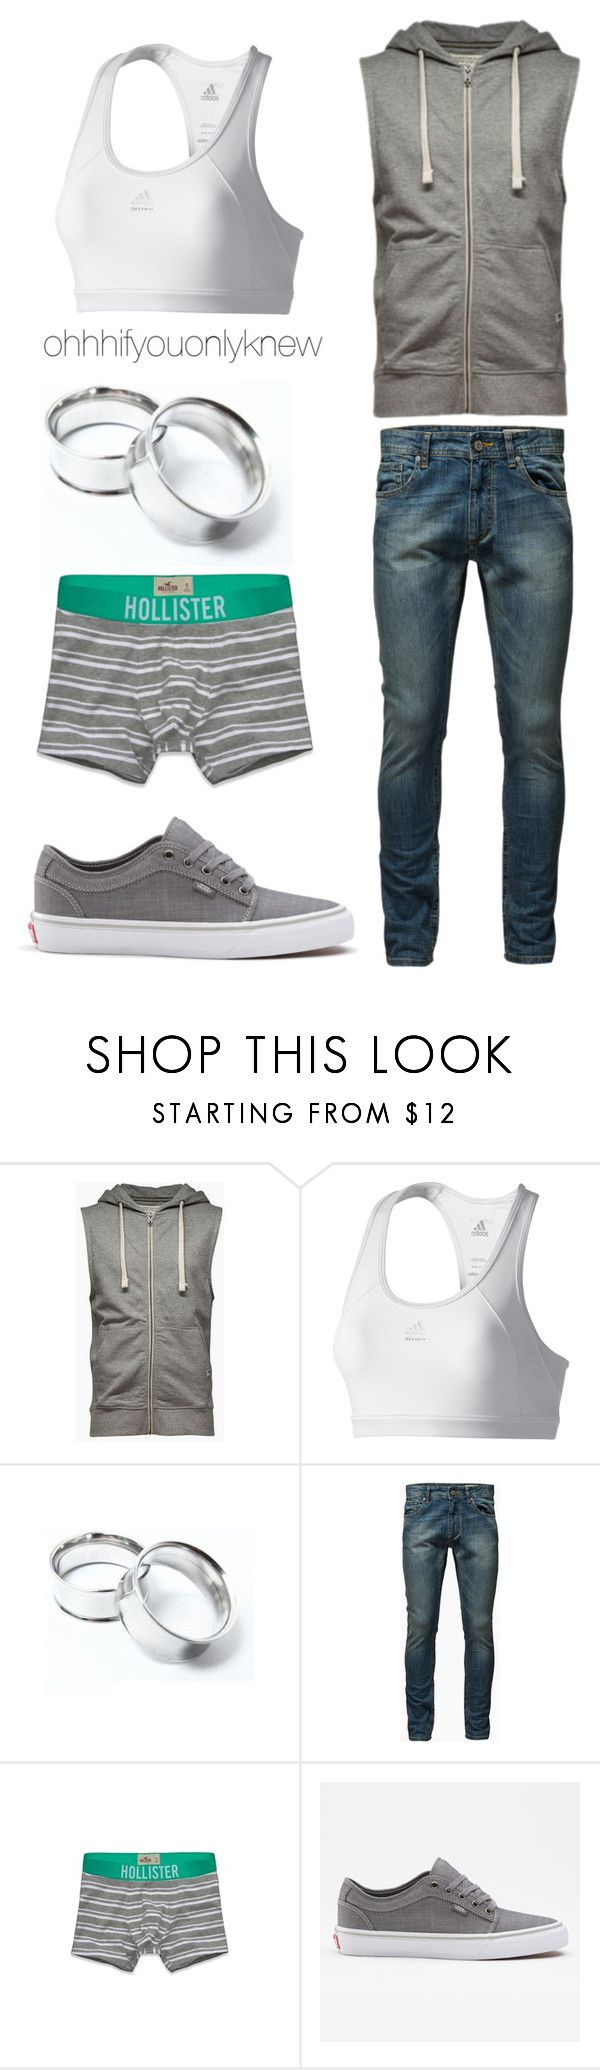 """""""Untitled #175"""" by ohhhifyouonlyknew ❤ liked on Polyvore featuring adidas, Jack & Jones and Hollister Co."""